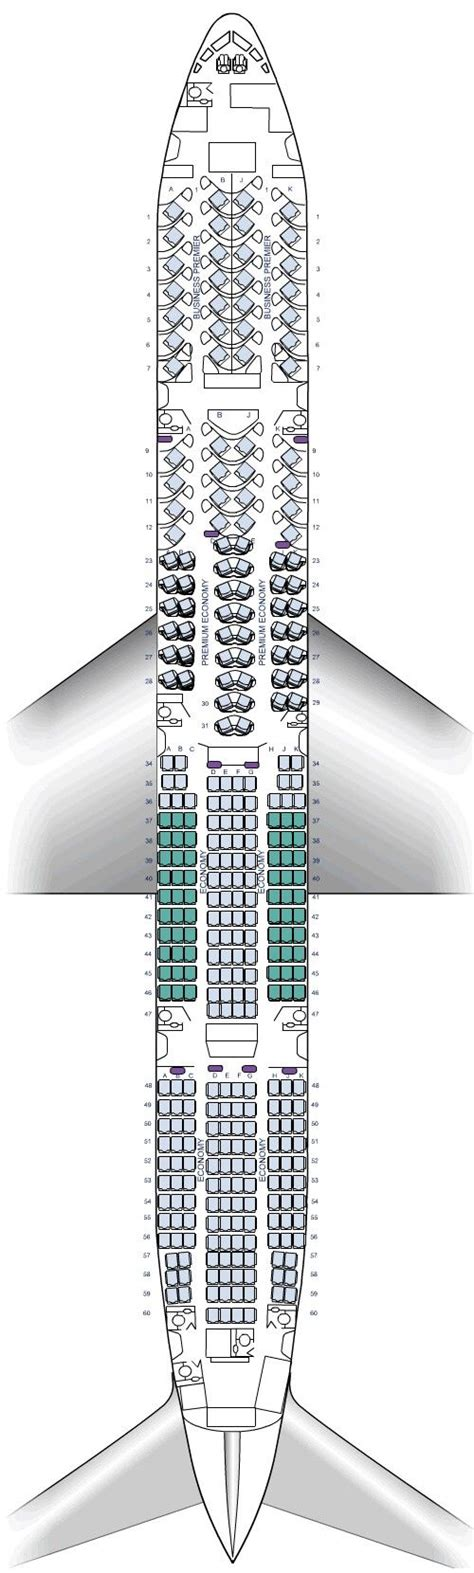 plan si鑒es boeing 777 300er air 25 best ideas about boeing 777 300er seating on